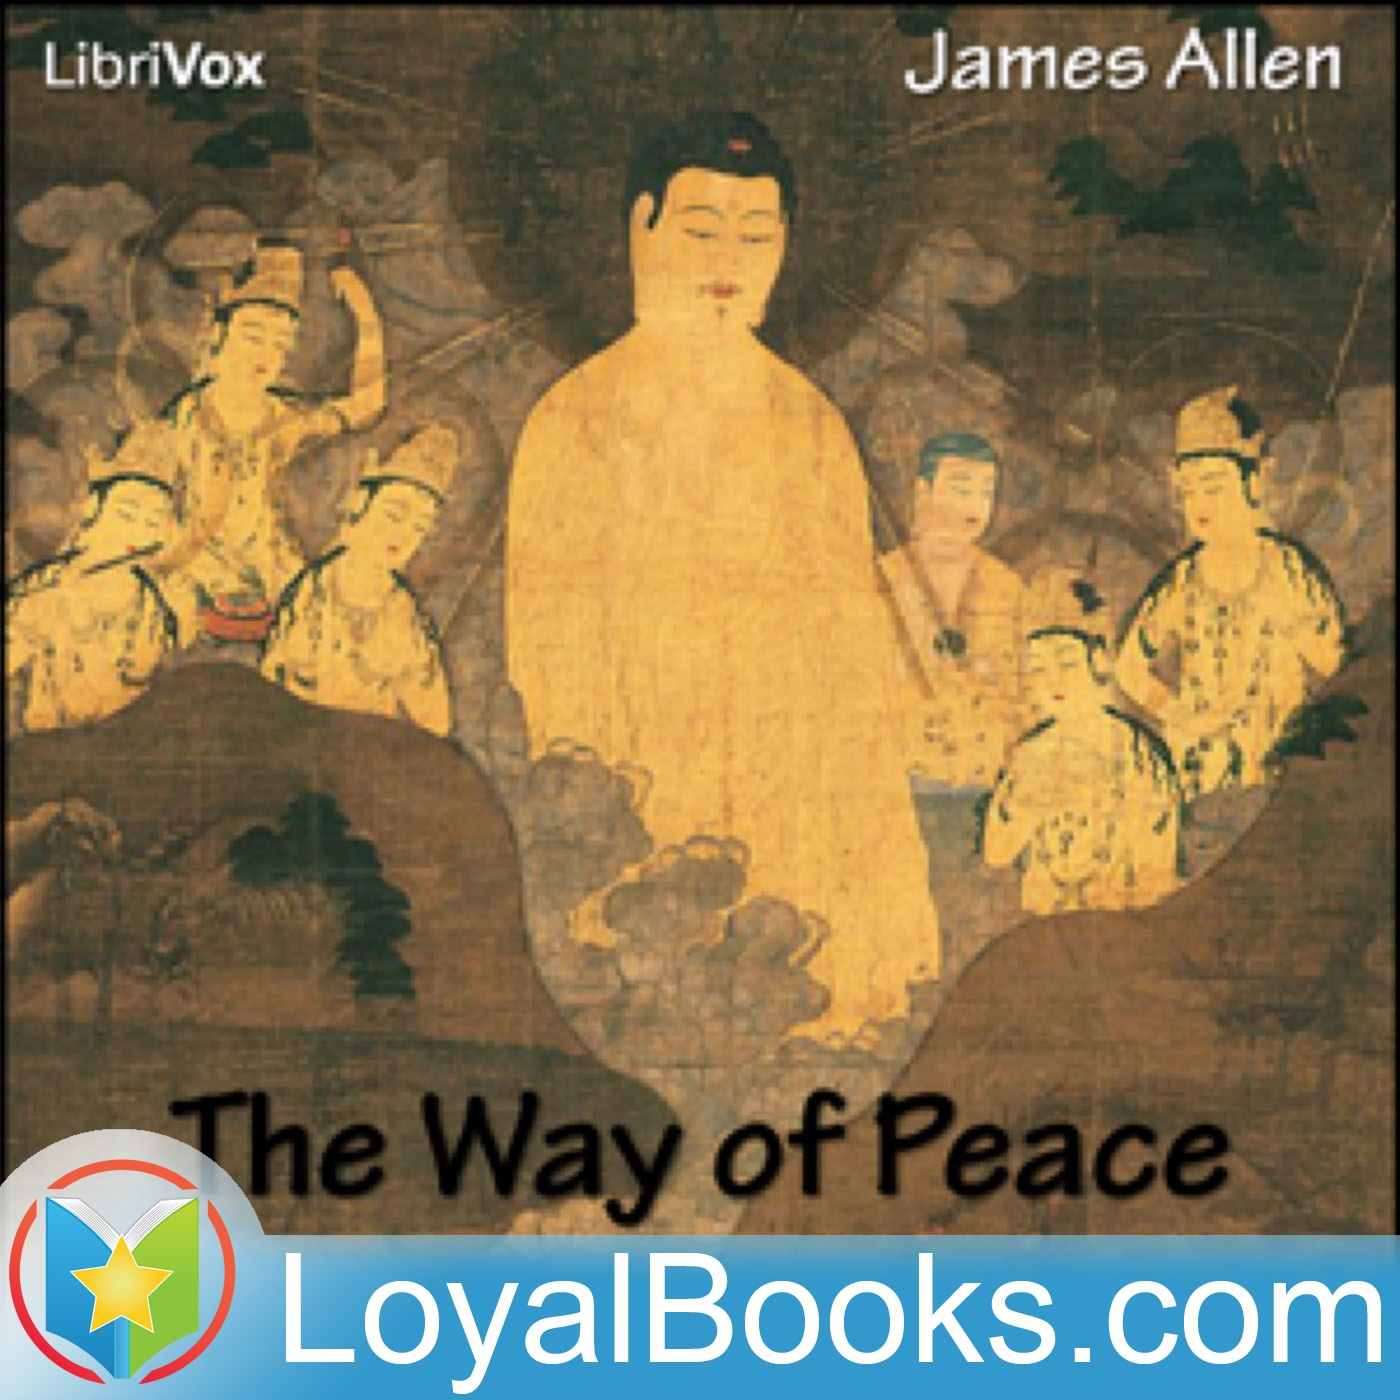 <![CDATA[The Way of Peace by James Allen]]>